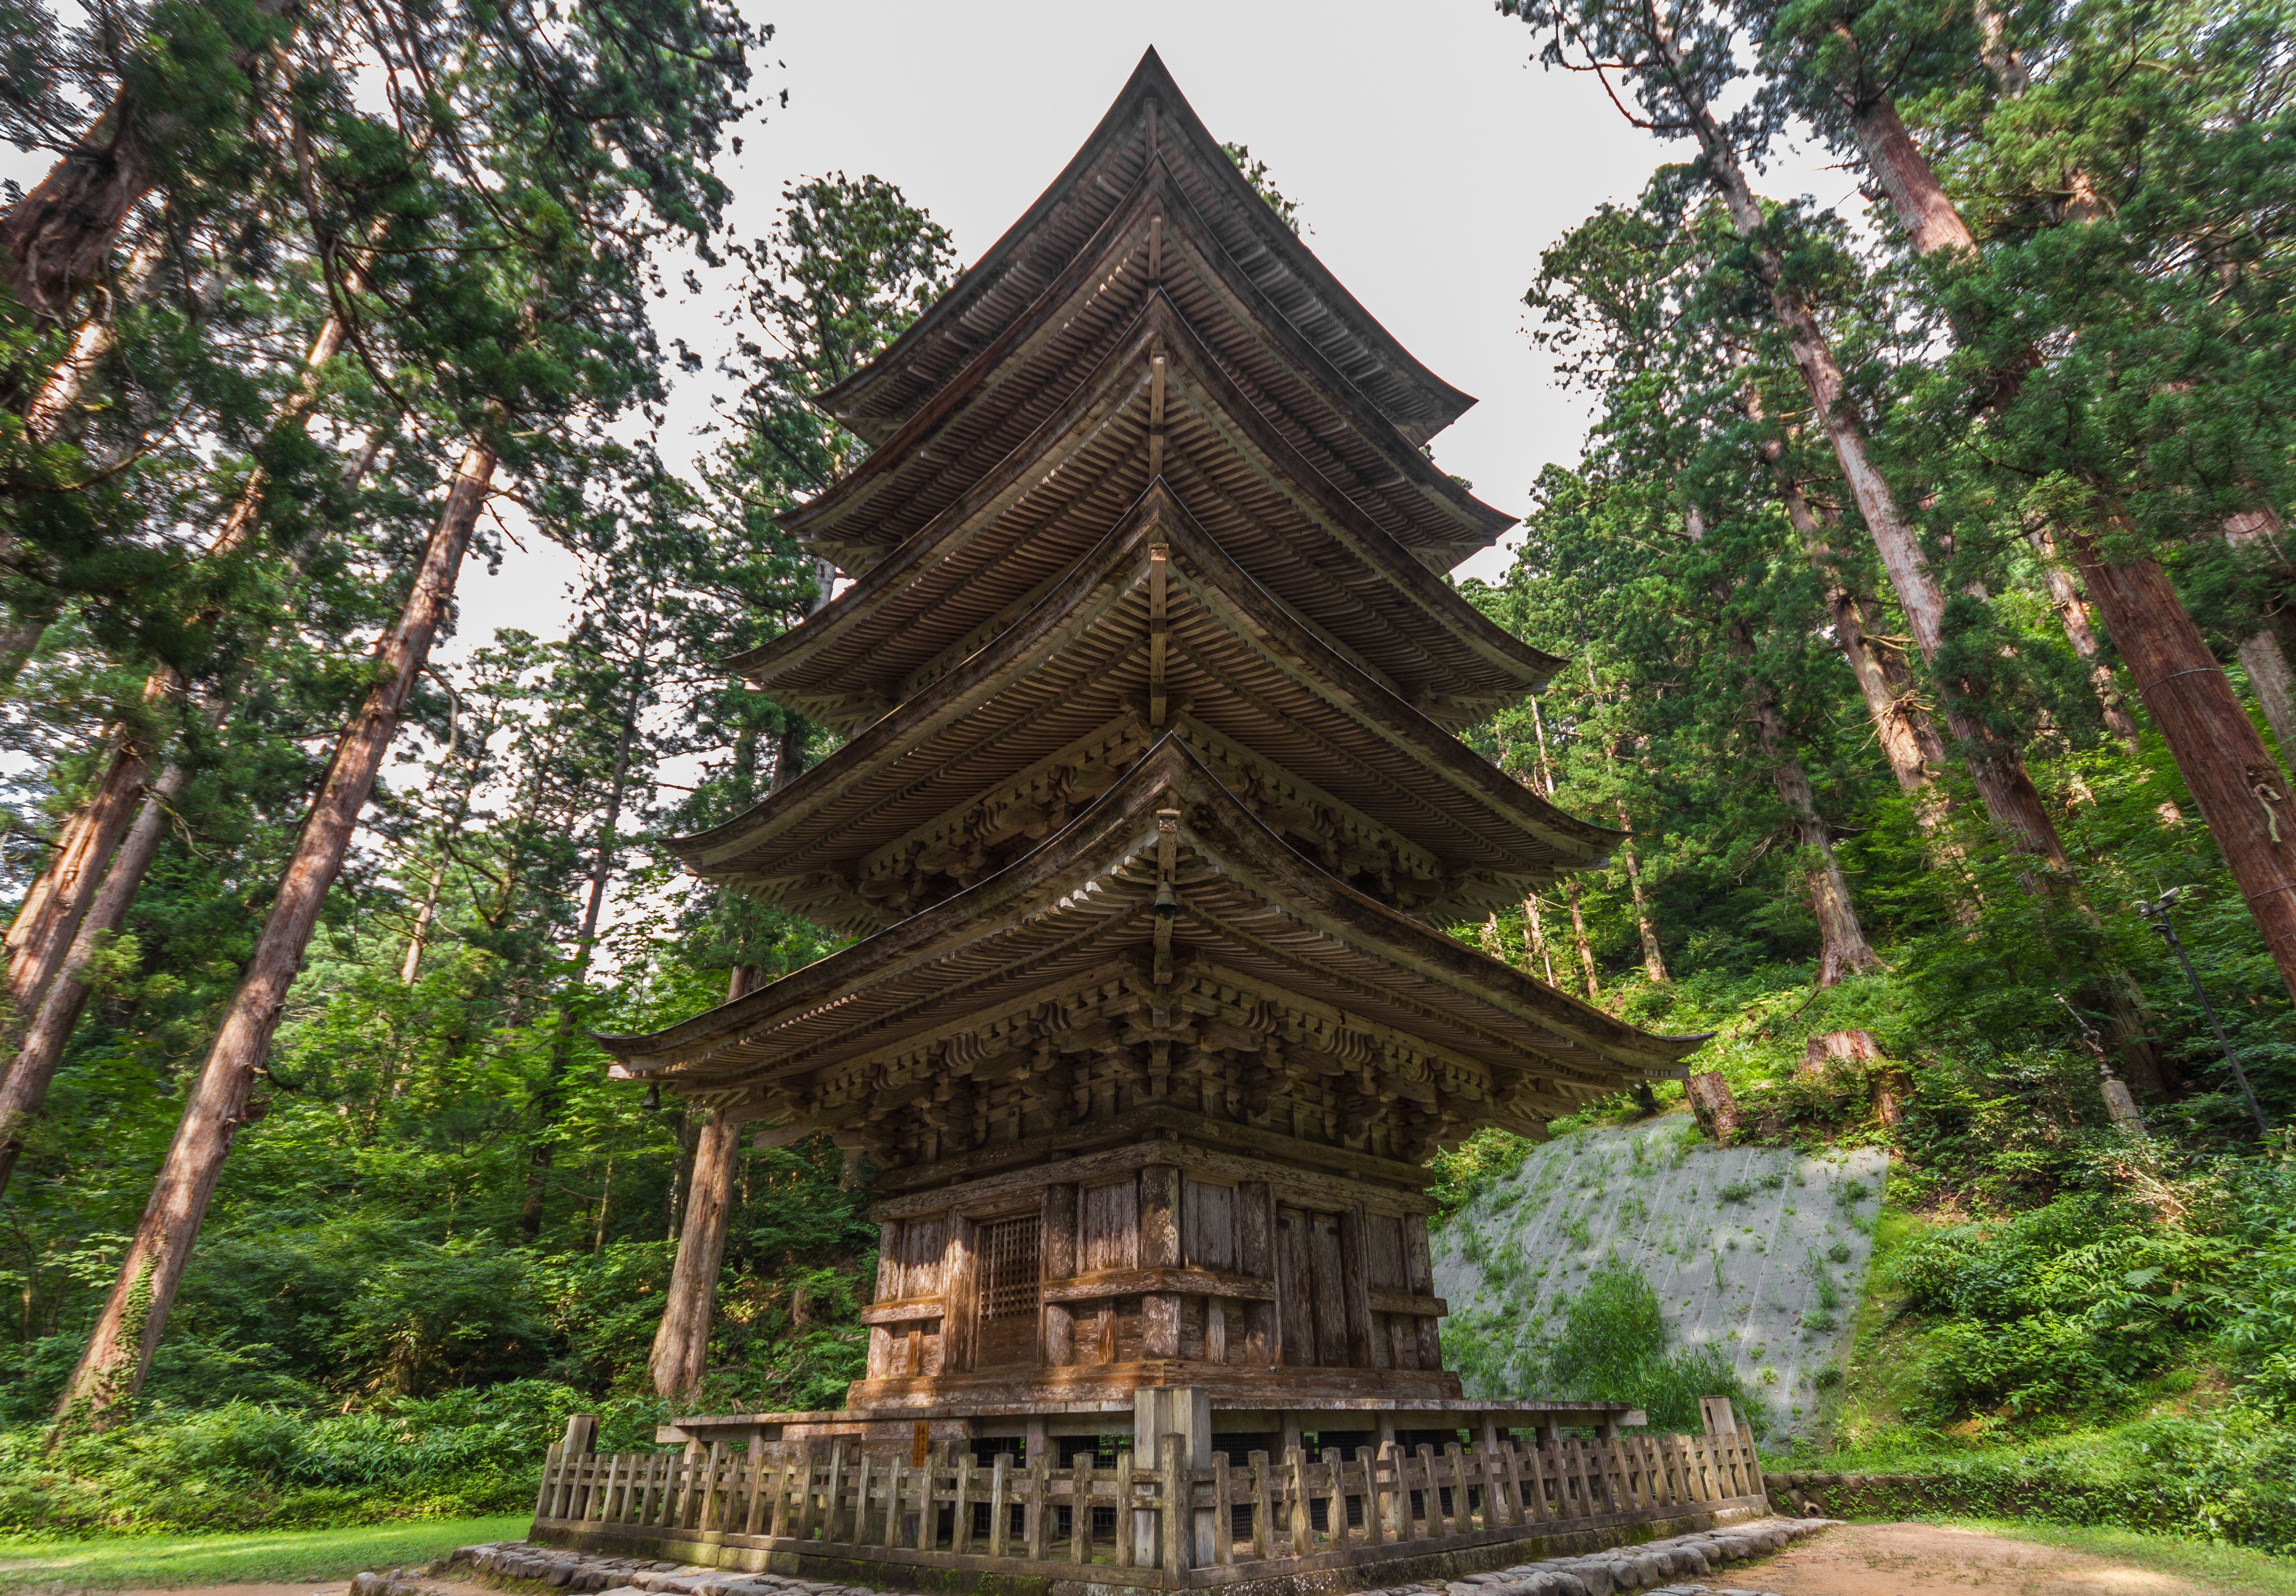 Five story pagoda in Japan